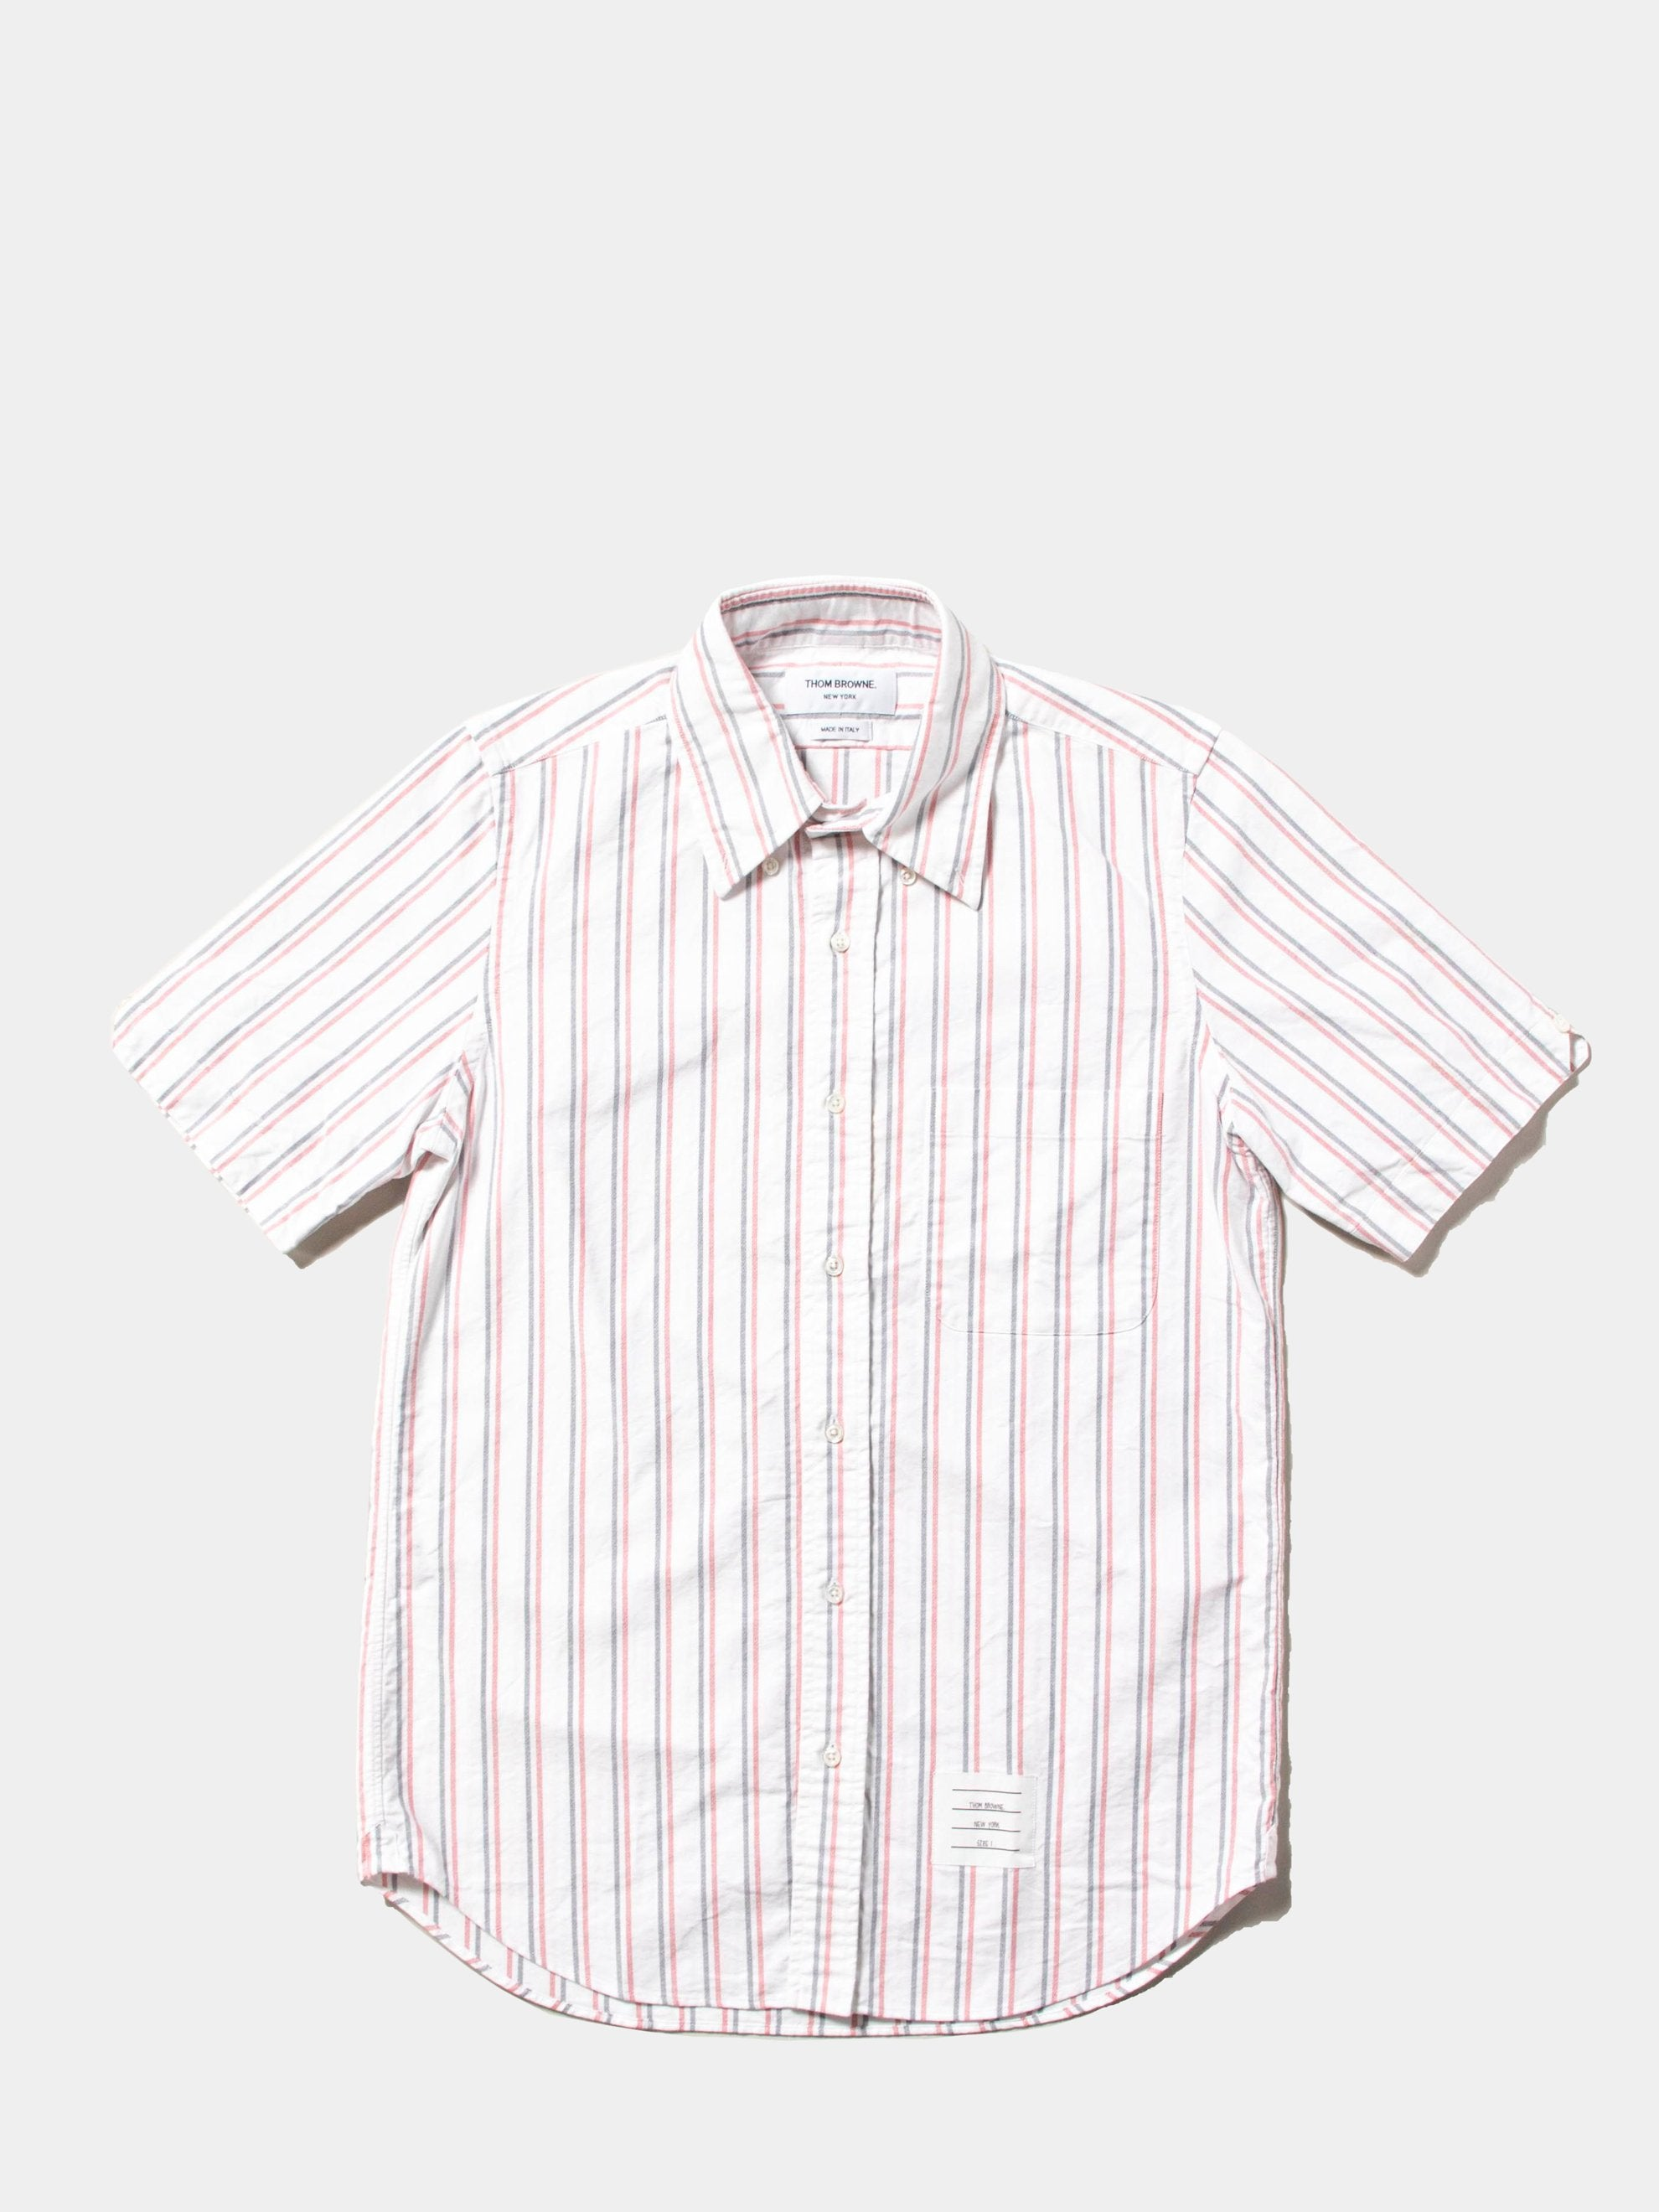 White Straight Fit BD SS Shirt W/ CB RWB GG In Tri Color Stripe Oxford 1